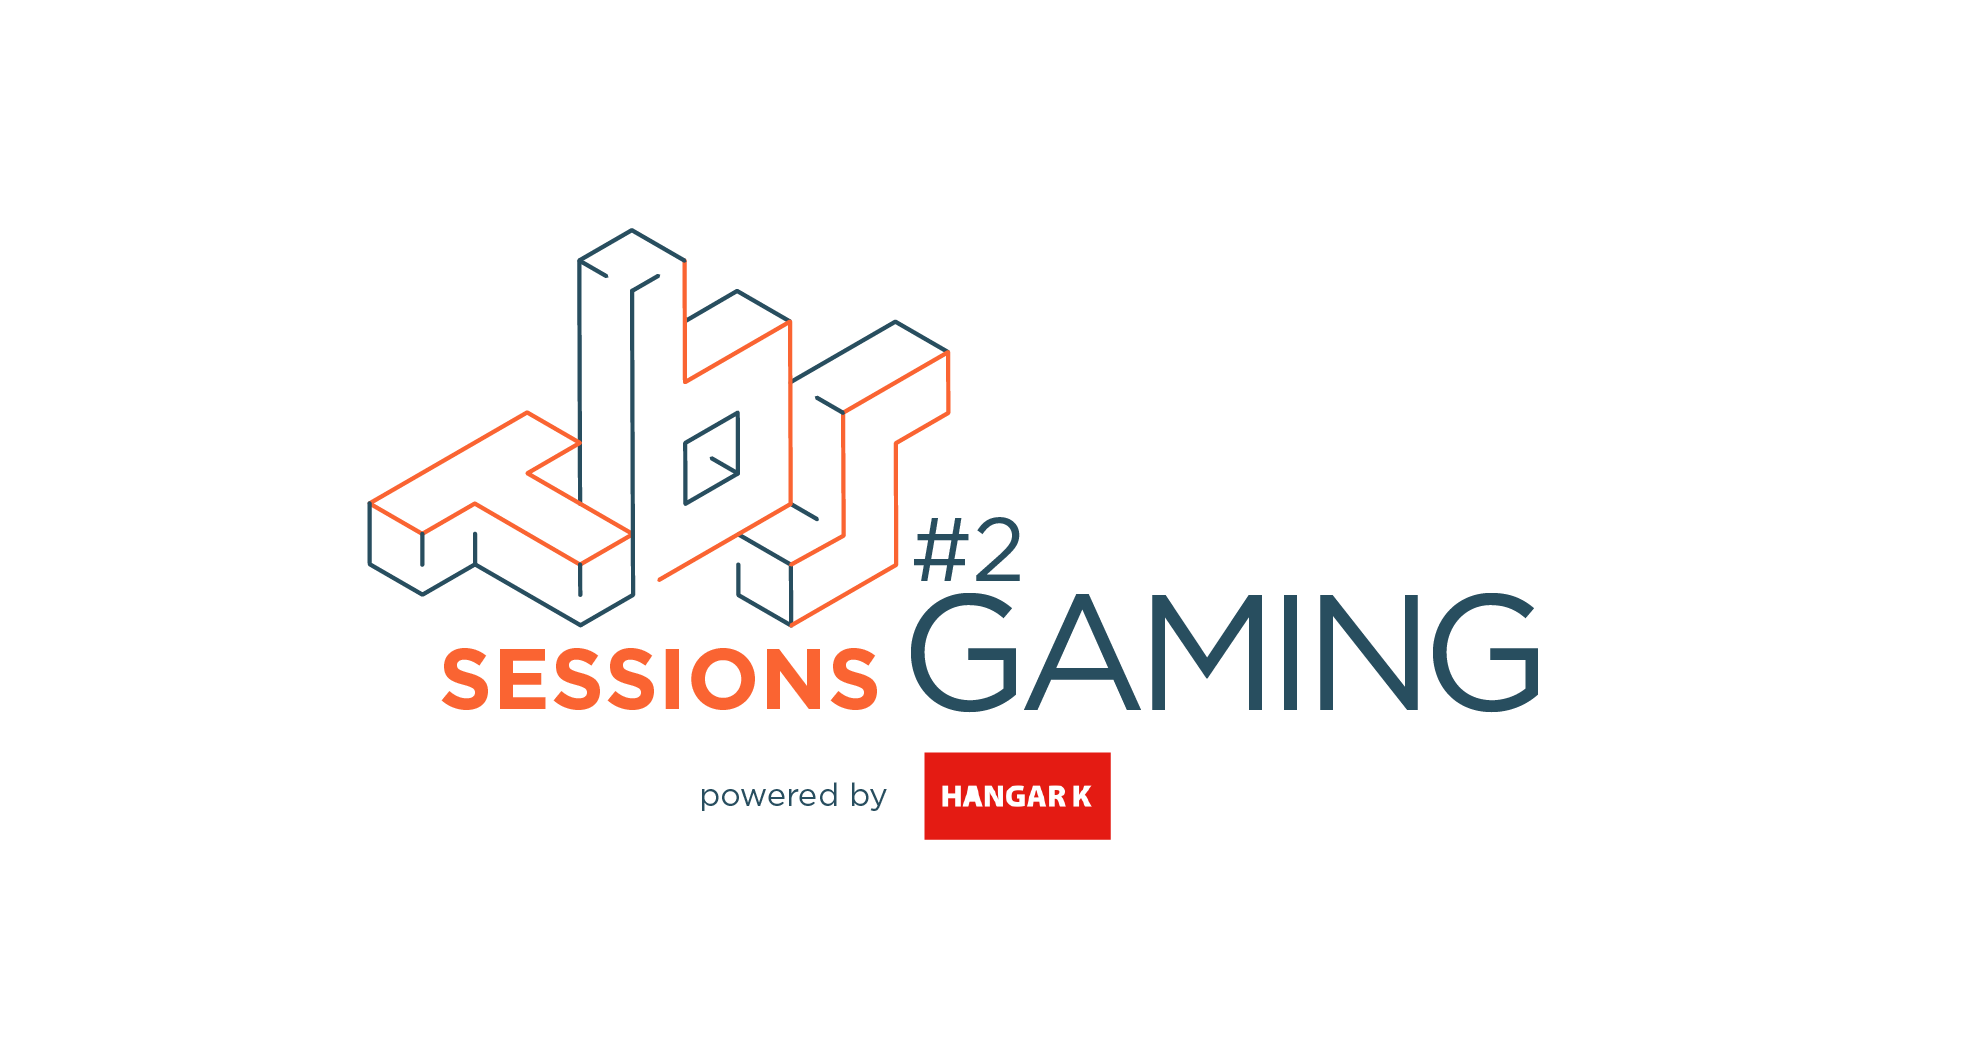 The Big Score Session #2 Gaming